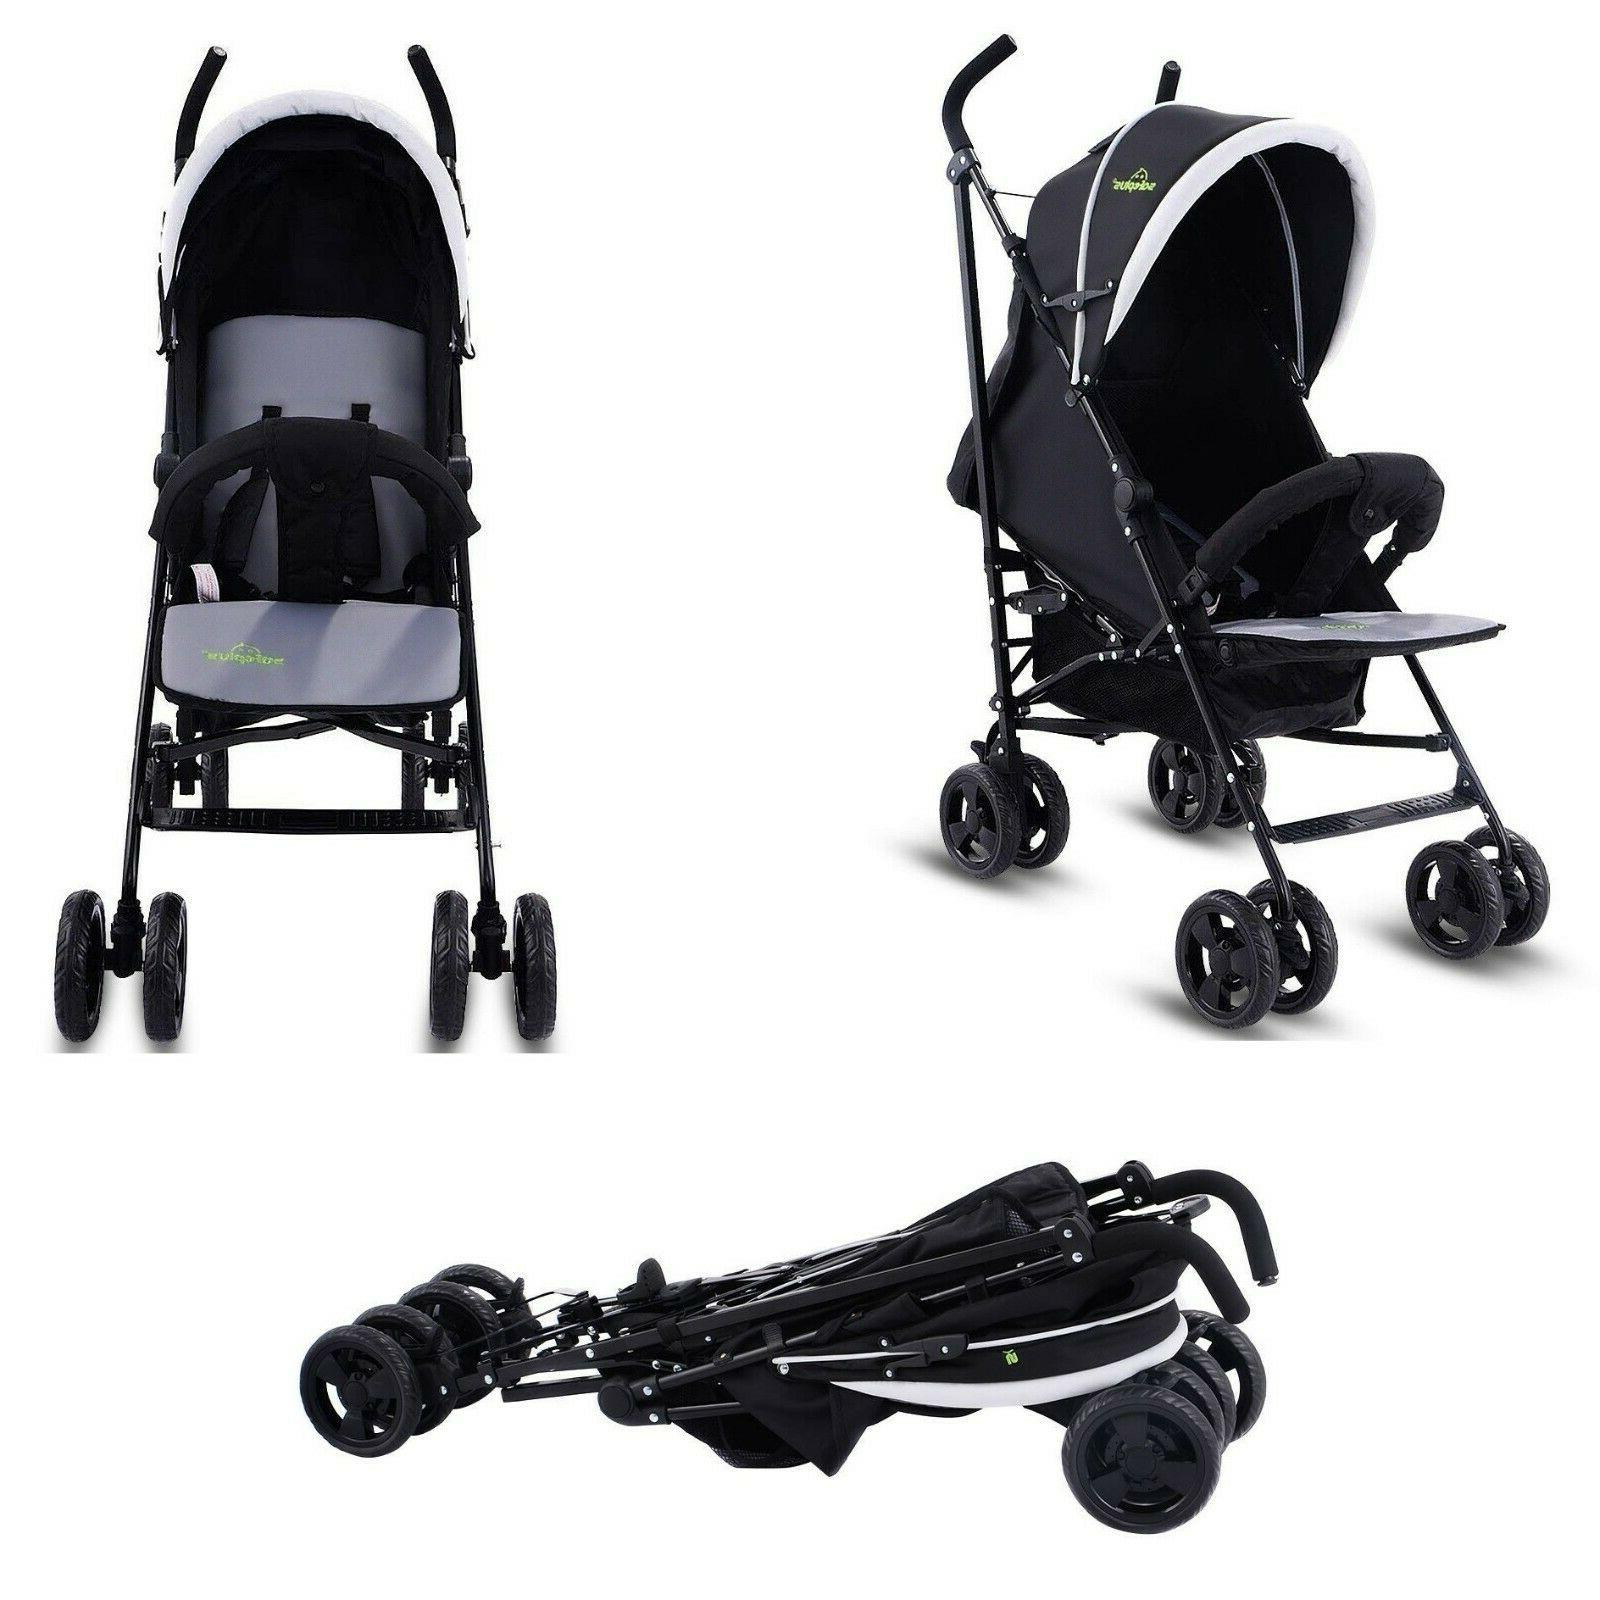 Costway Foldable Baby Stroller Buggy Kids Jogger Travel Infa